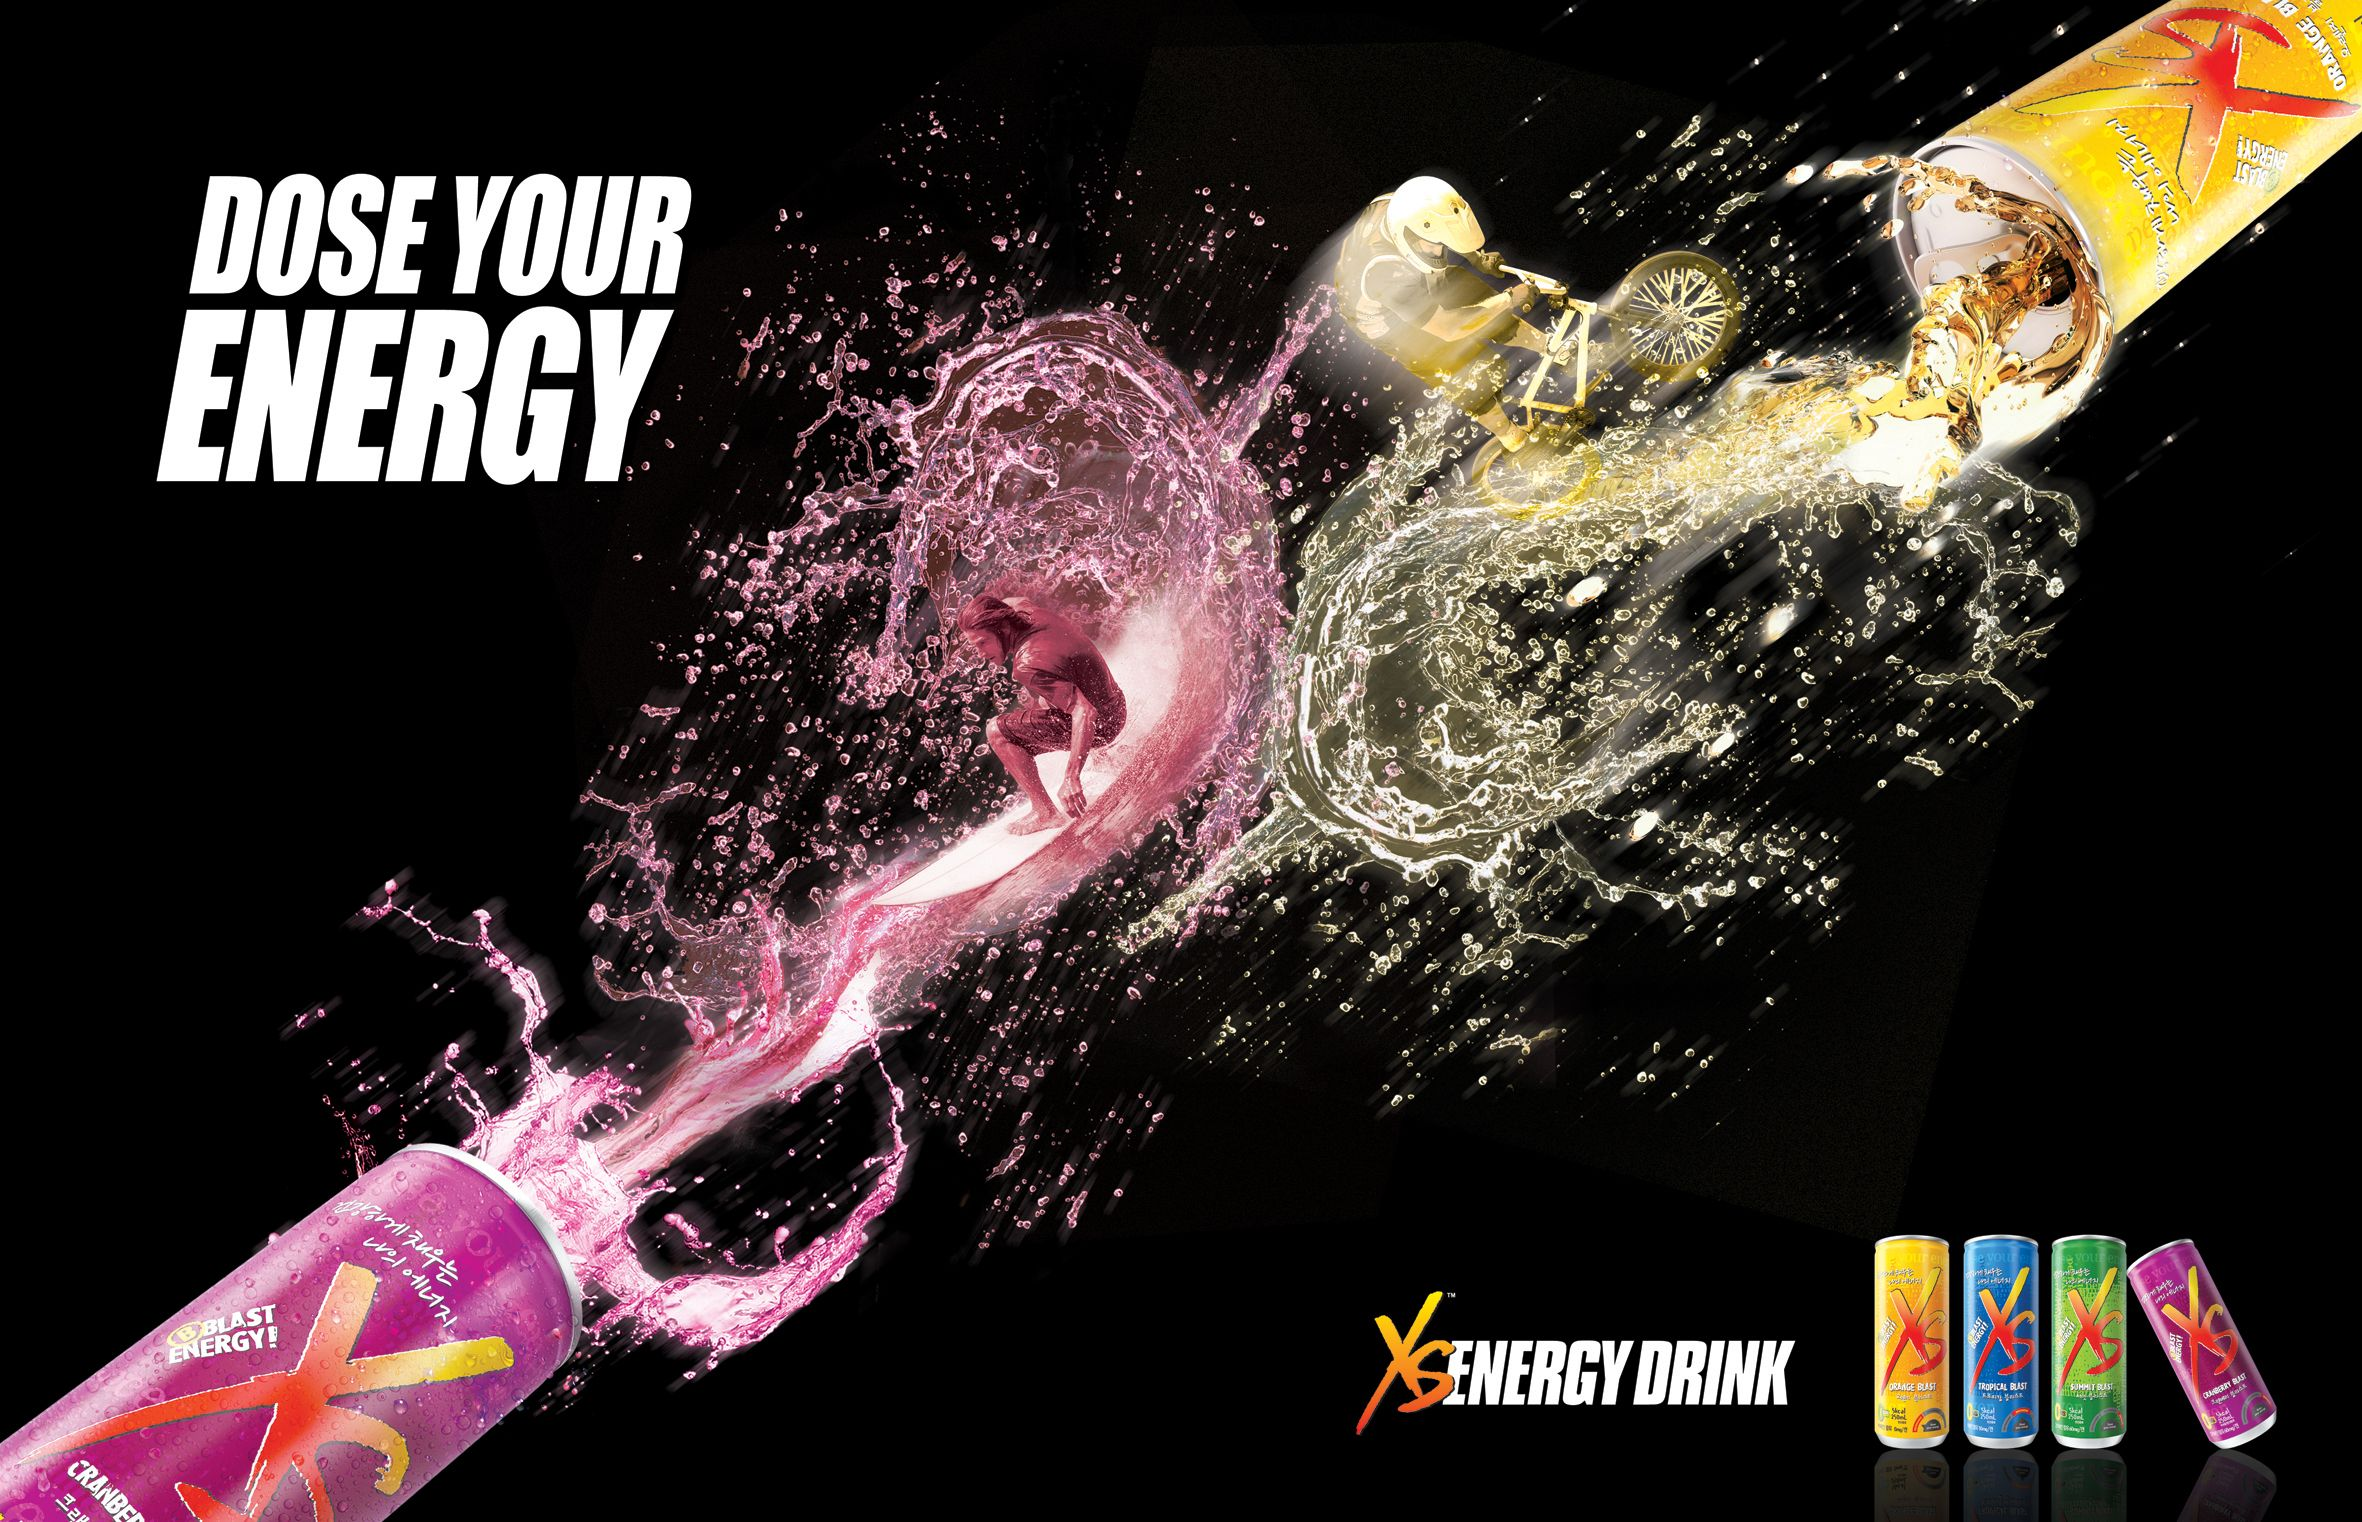 energy drink ad V stands for vitalise it's an energy drink containing guarana and caffeine developed by frucor beverages in new zealand, after the success of red bull in europe and asia v was launched in 1997 and quickly caught the imagination of a younger generation, becoming the energy drink of preference for.